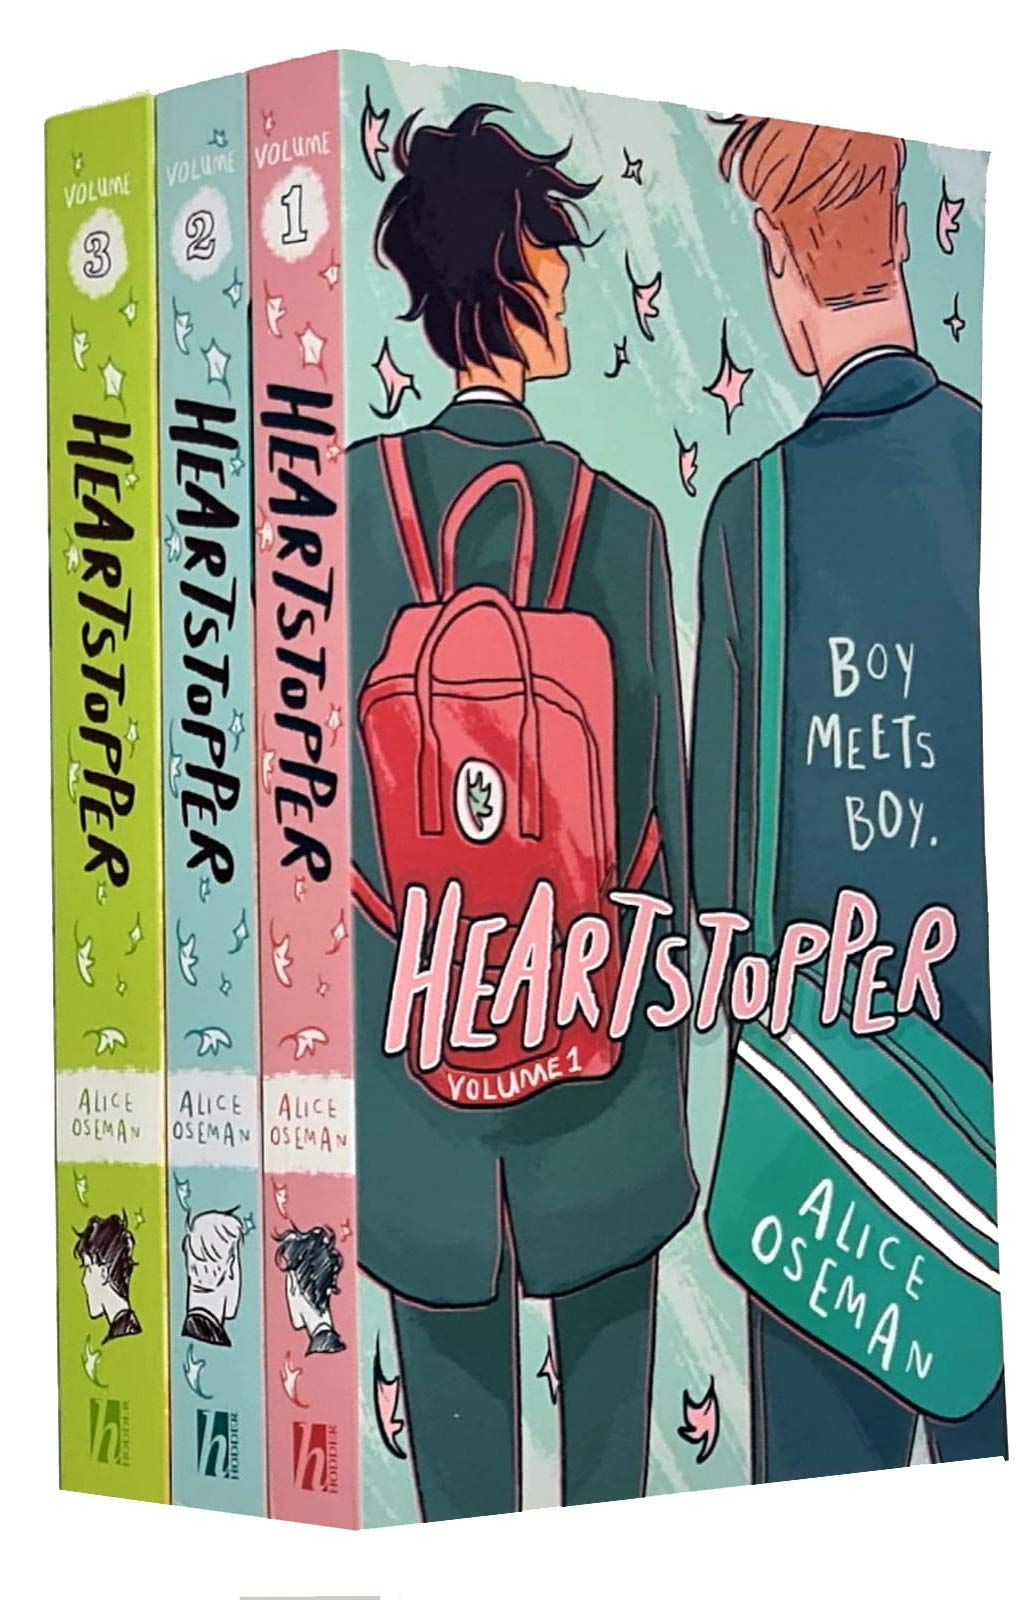 Amazon.com: Heartstopper Series Volume 1-3 Books Collection Set By Alice  Oseman (9789123971923): Alice Oseman, Heartstopper Volume Three By Alice  Oseman, 978-1444952773, 1444952773, 9781444952773, Heartstopper Volume One  By Alice Oseman, 978-1444951387 ...